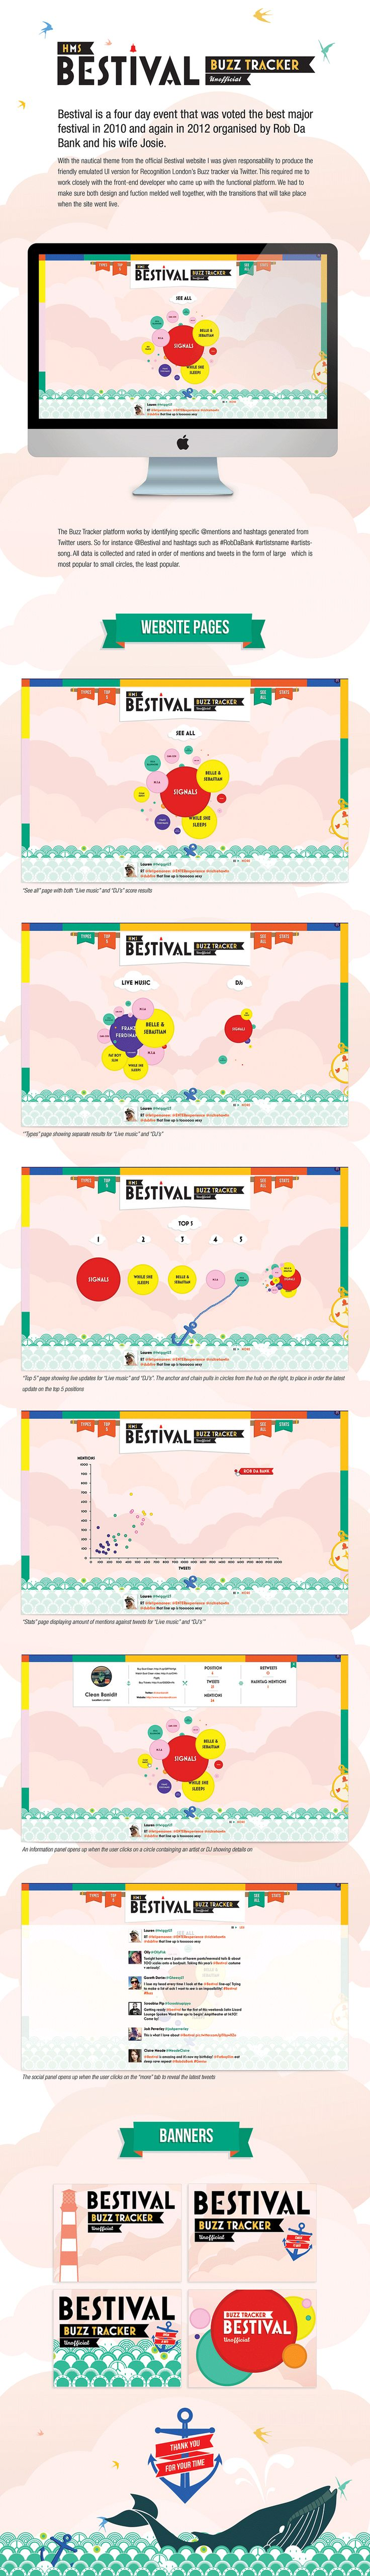 #Bestival #2013 #web #design #buzz #tracker for #Twitter @mentions and #hashtags #nautical #ToneOfVoice #illustrations #banners